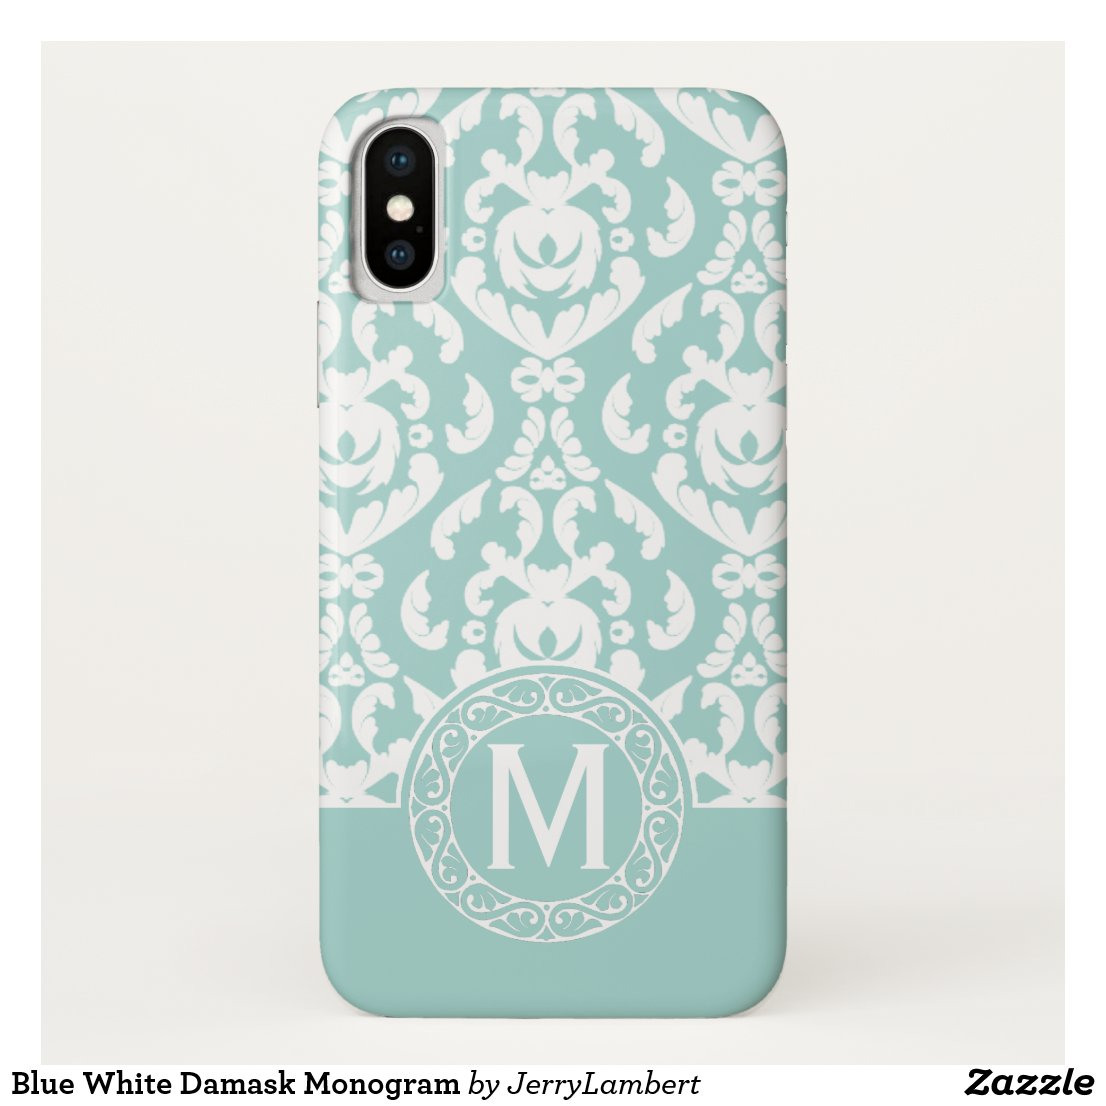 Blue White Damask Monogram iPhone X Case